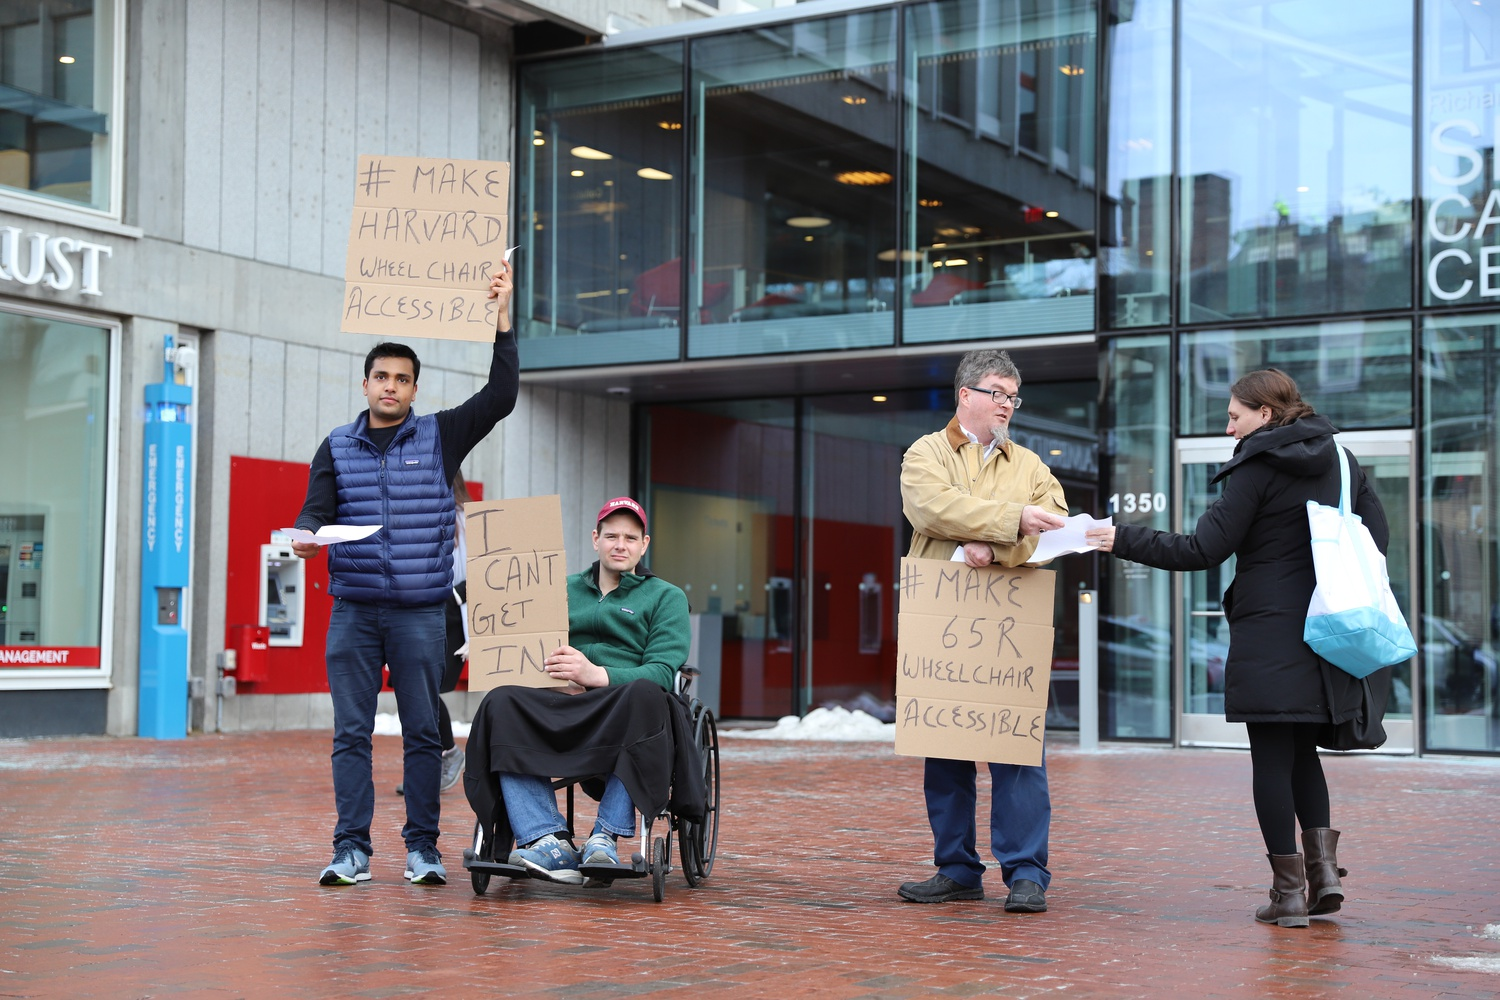 On Friday afternoon, Raman Solanki, Robert A. Weckesser, and Christopher J. McCarthy protested the inaccessible entrance to an HUIT building at 65R Mt. Auburn St.